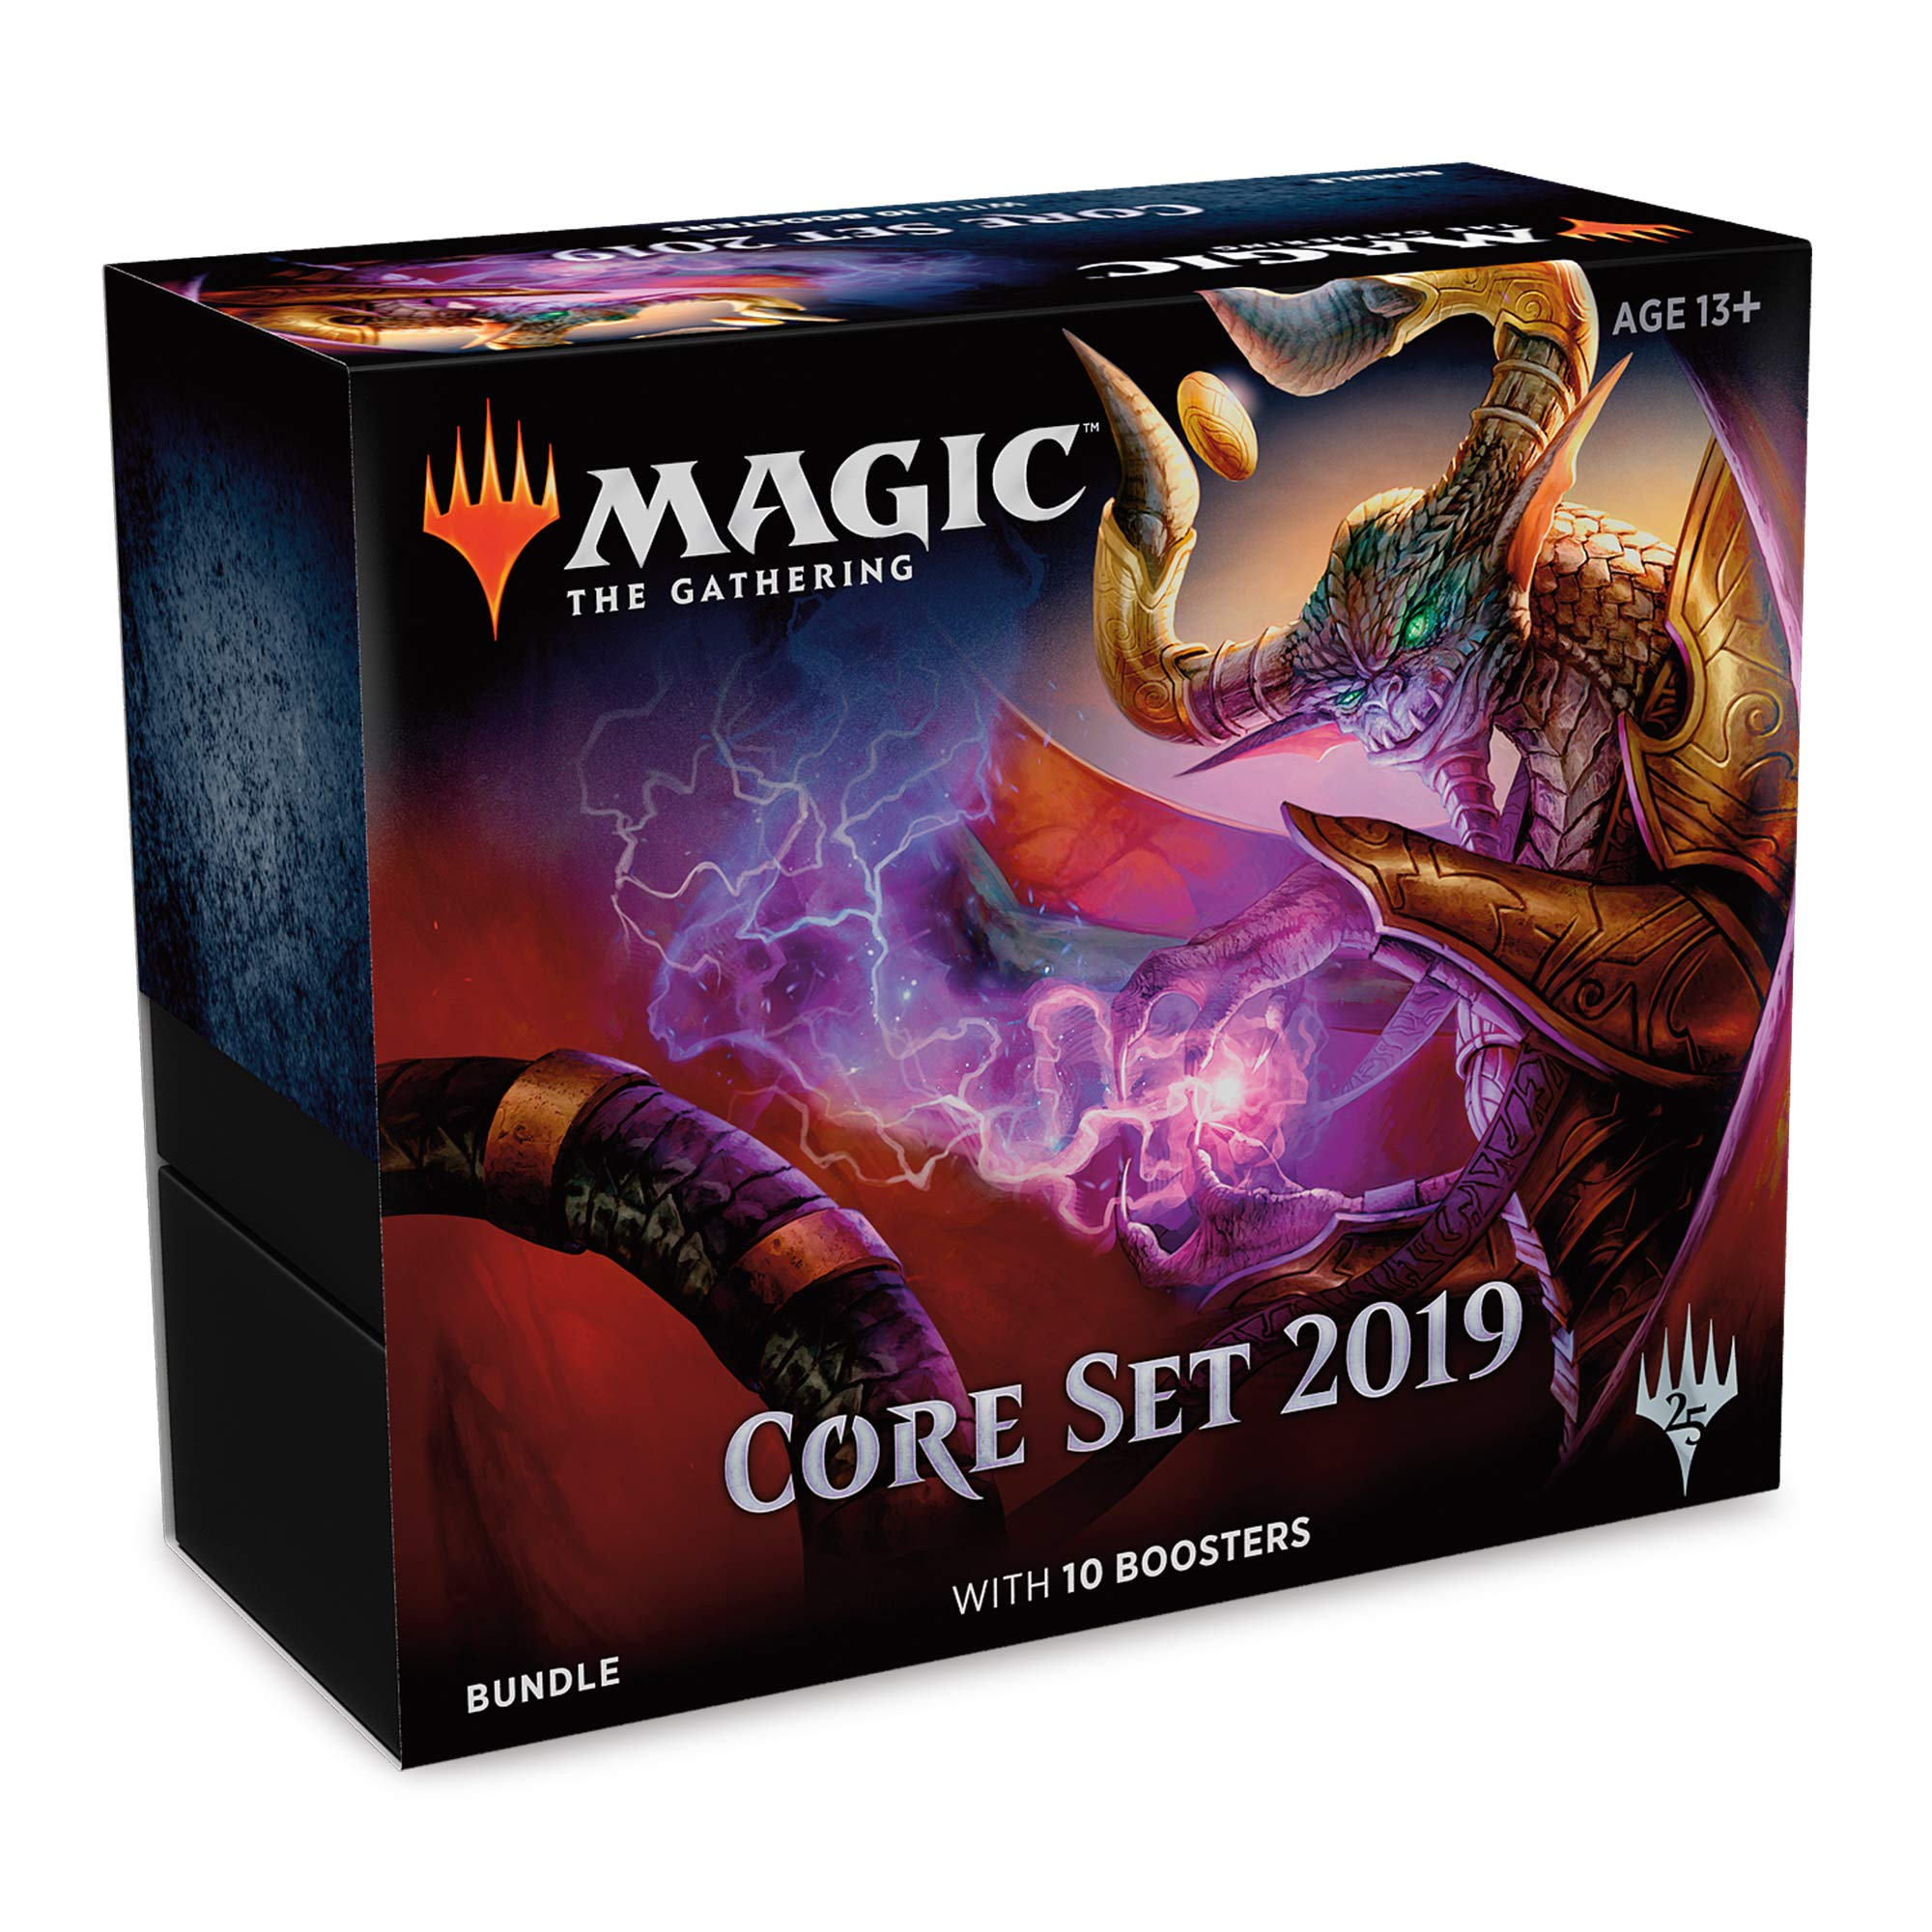 Magic: The Gathering Core Set 2019 Bundle (MTG) (M19) 10 Booster Pack + Accessories